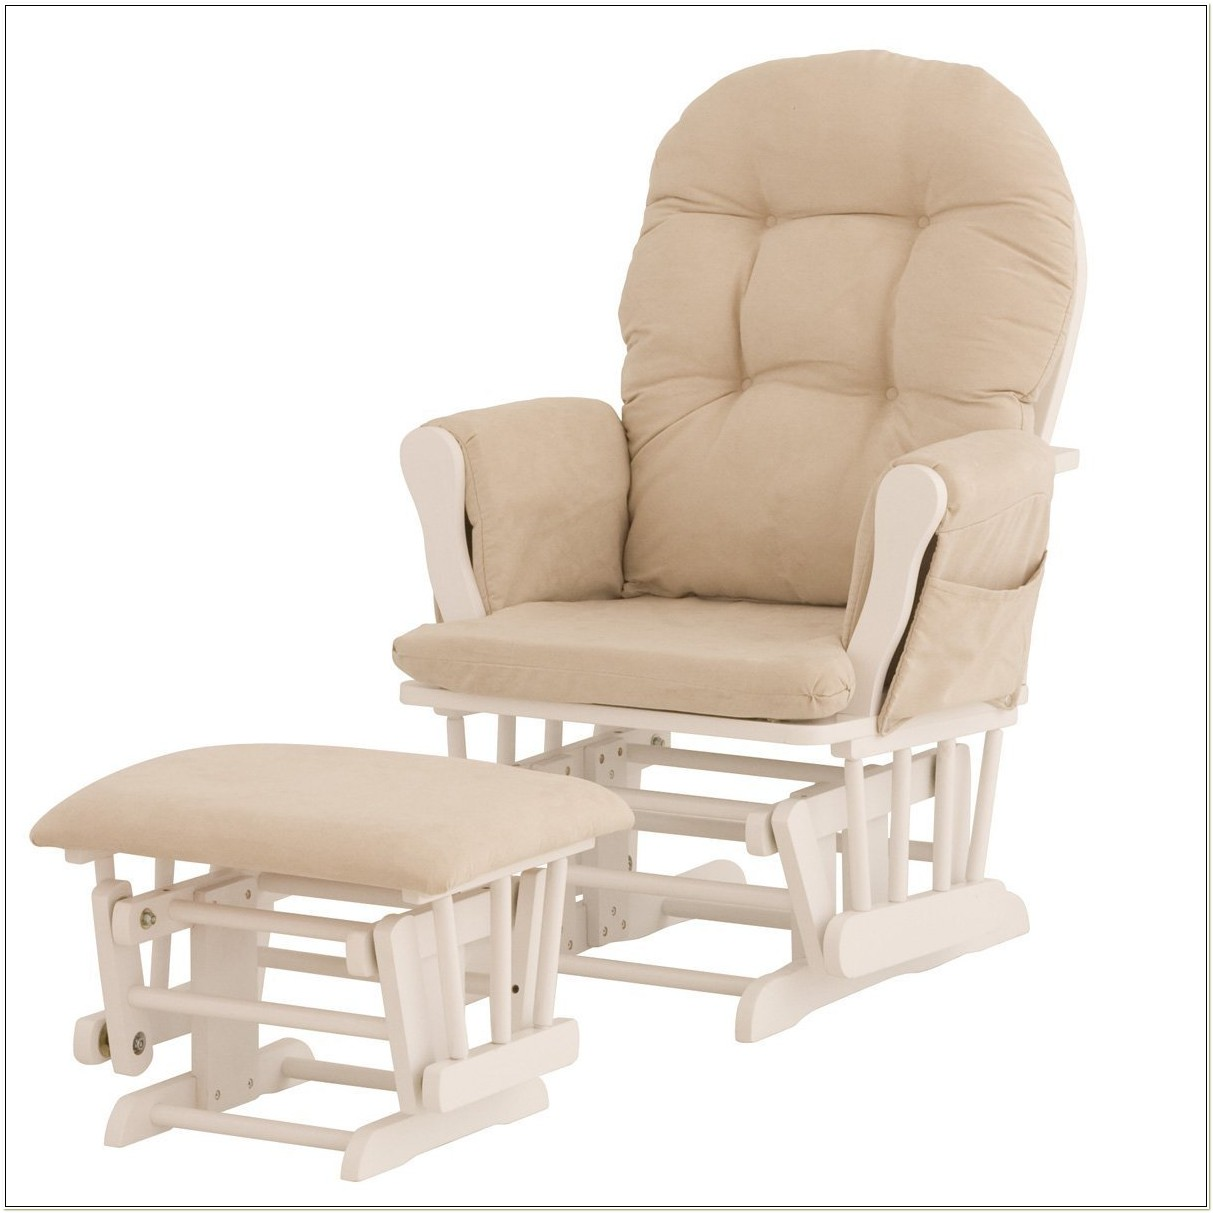 Stork Craft Rocking Chair And Ottoman